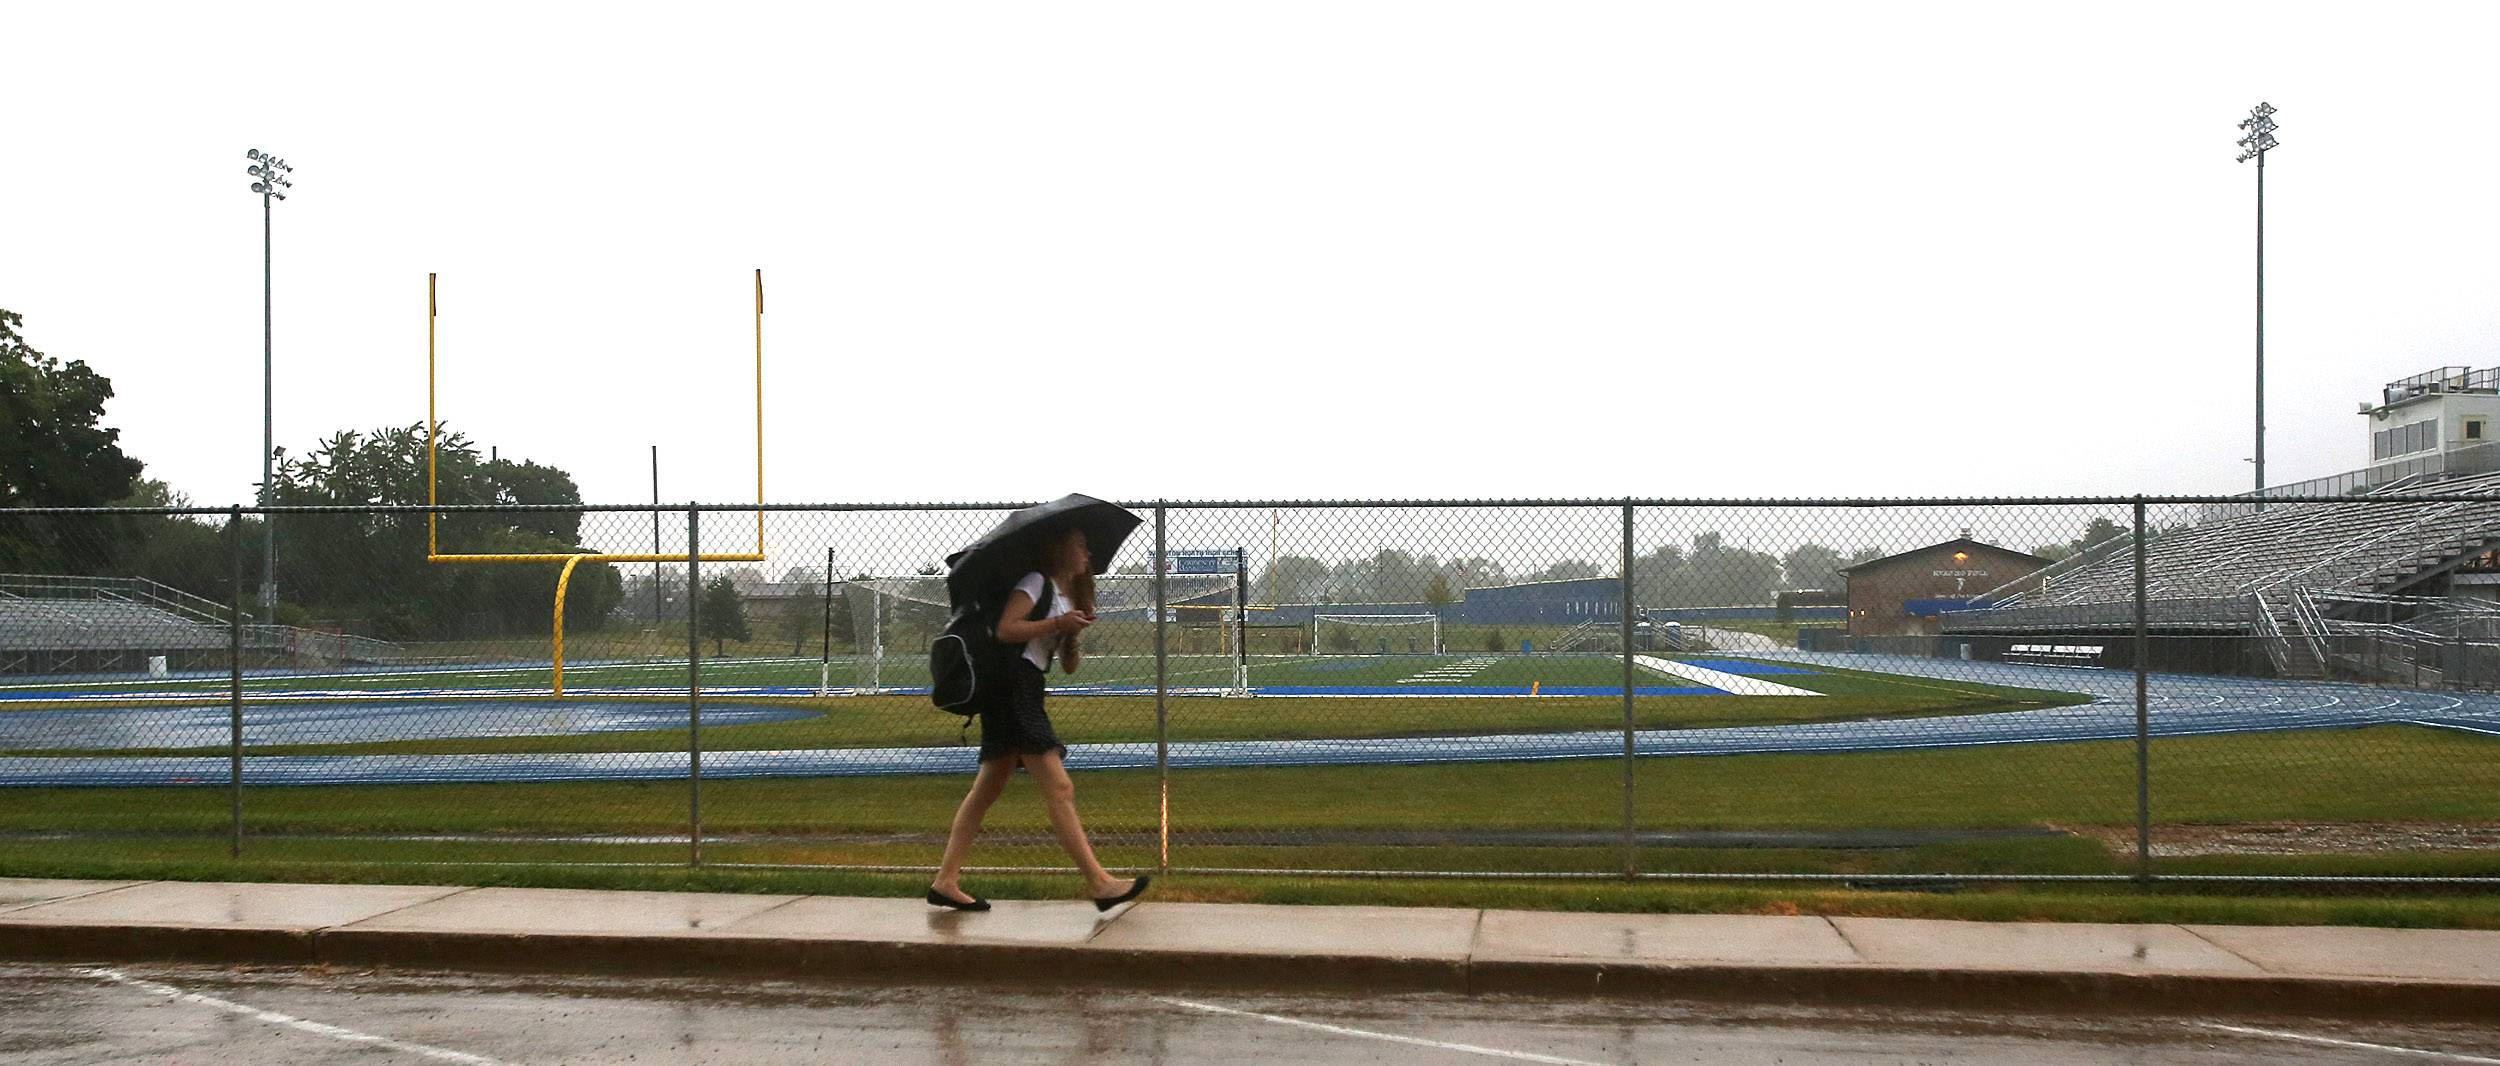 Students battle a morning rain Thursday during the first day of classes at Wheaton North High School. A new track installed this summer circles the school's football field.